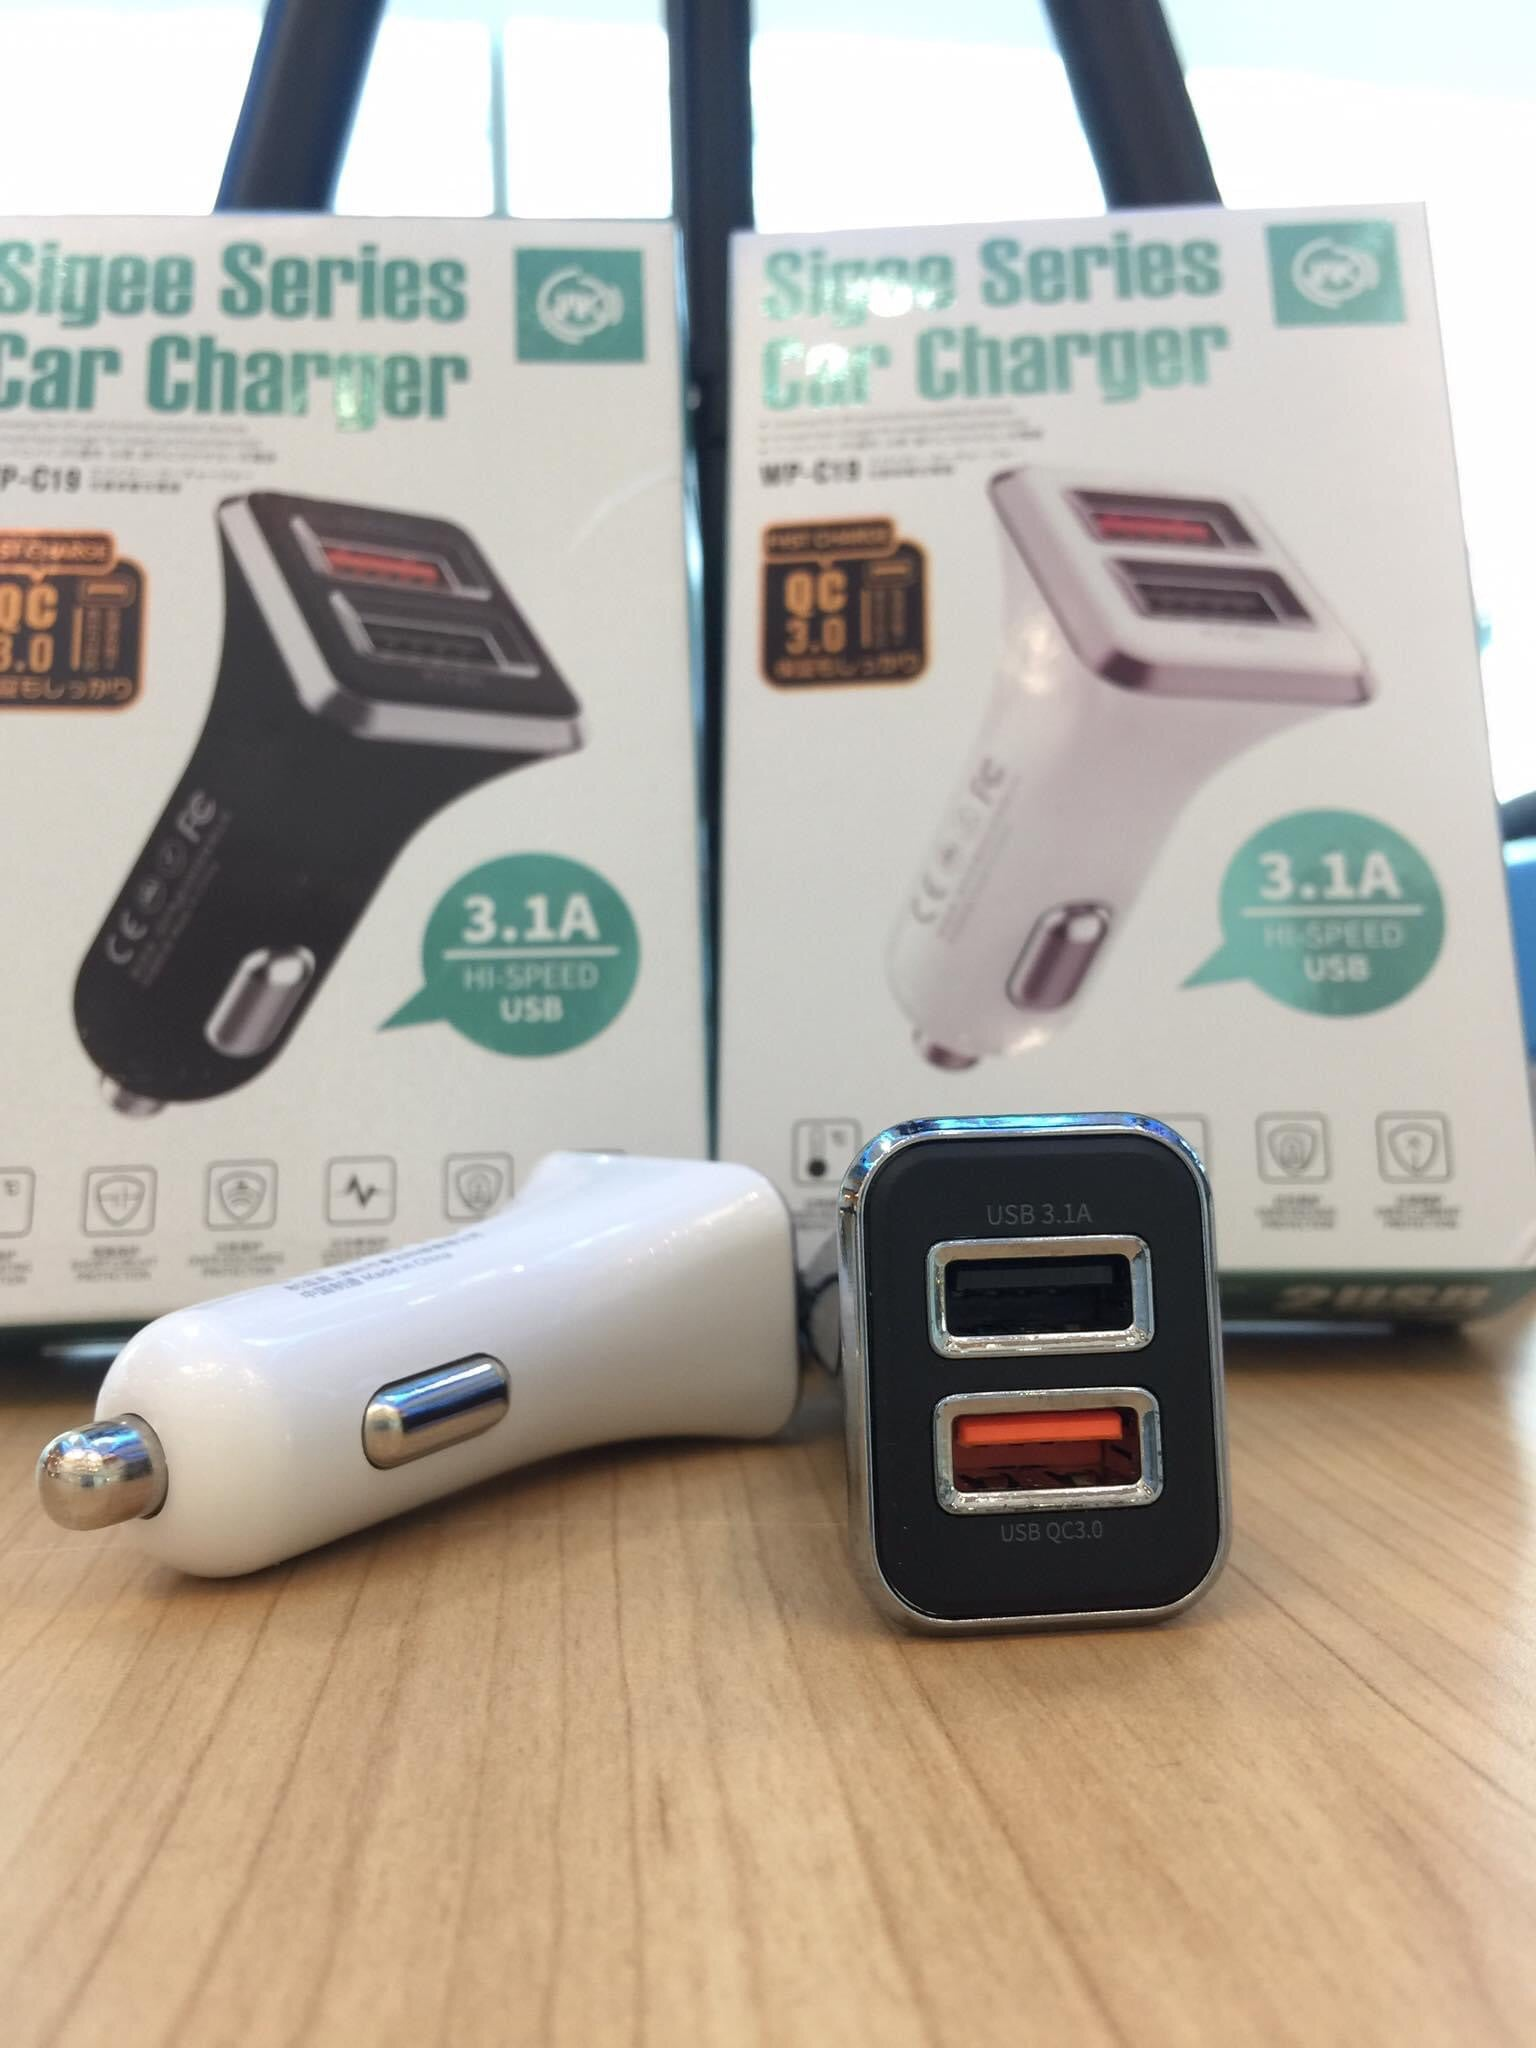 WP-C19 QC3.0+USB3.1A Sigee Series Car Charger